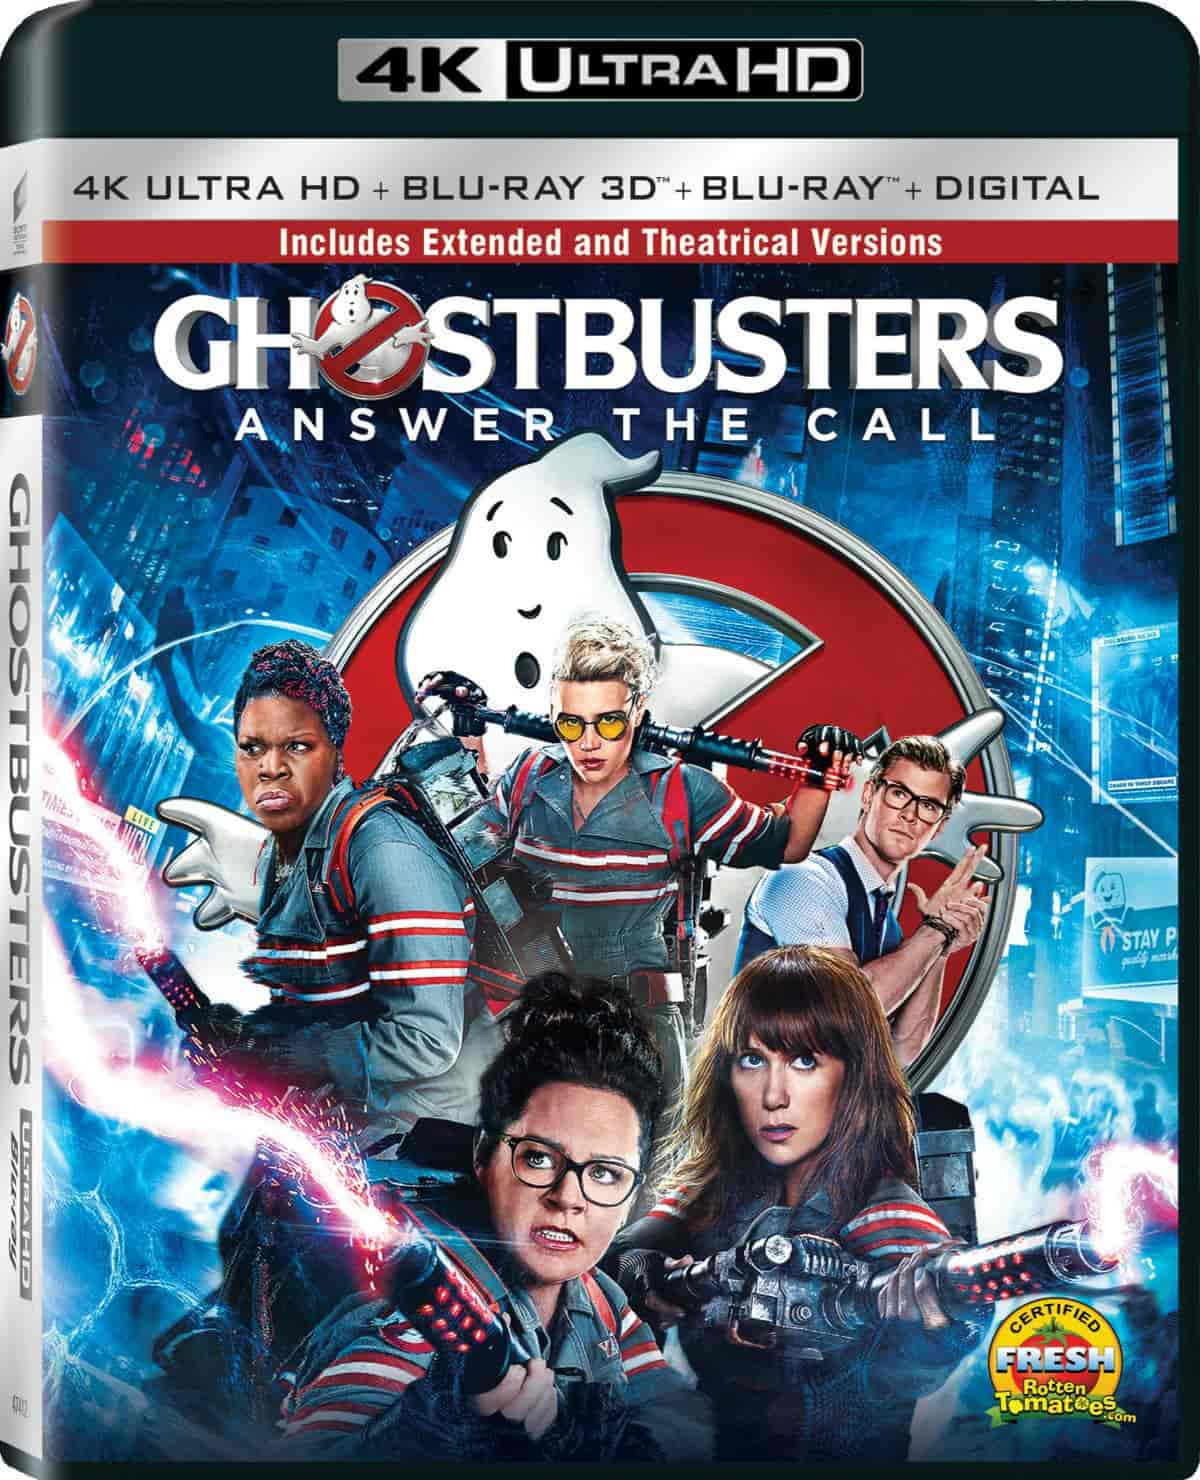 Ghostbusters 4K 2016 Ultra HD 2160p